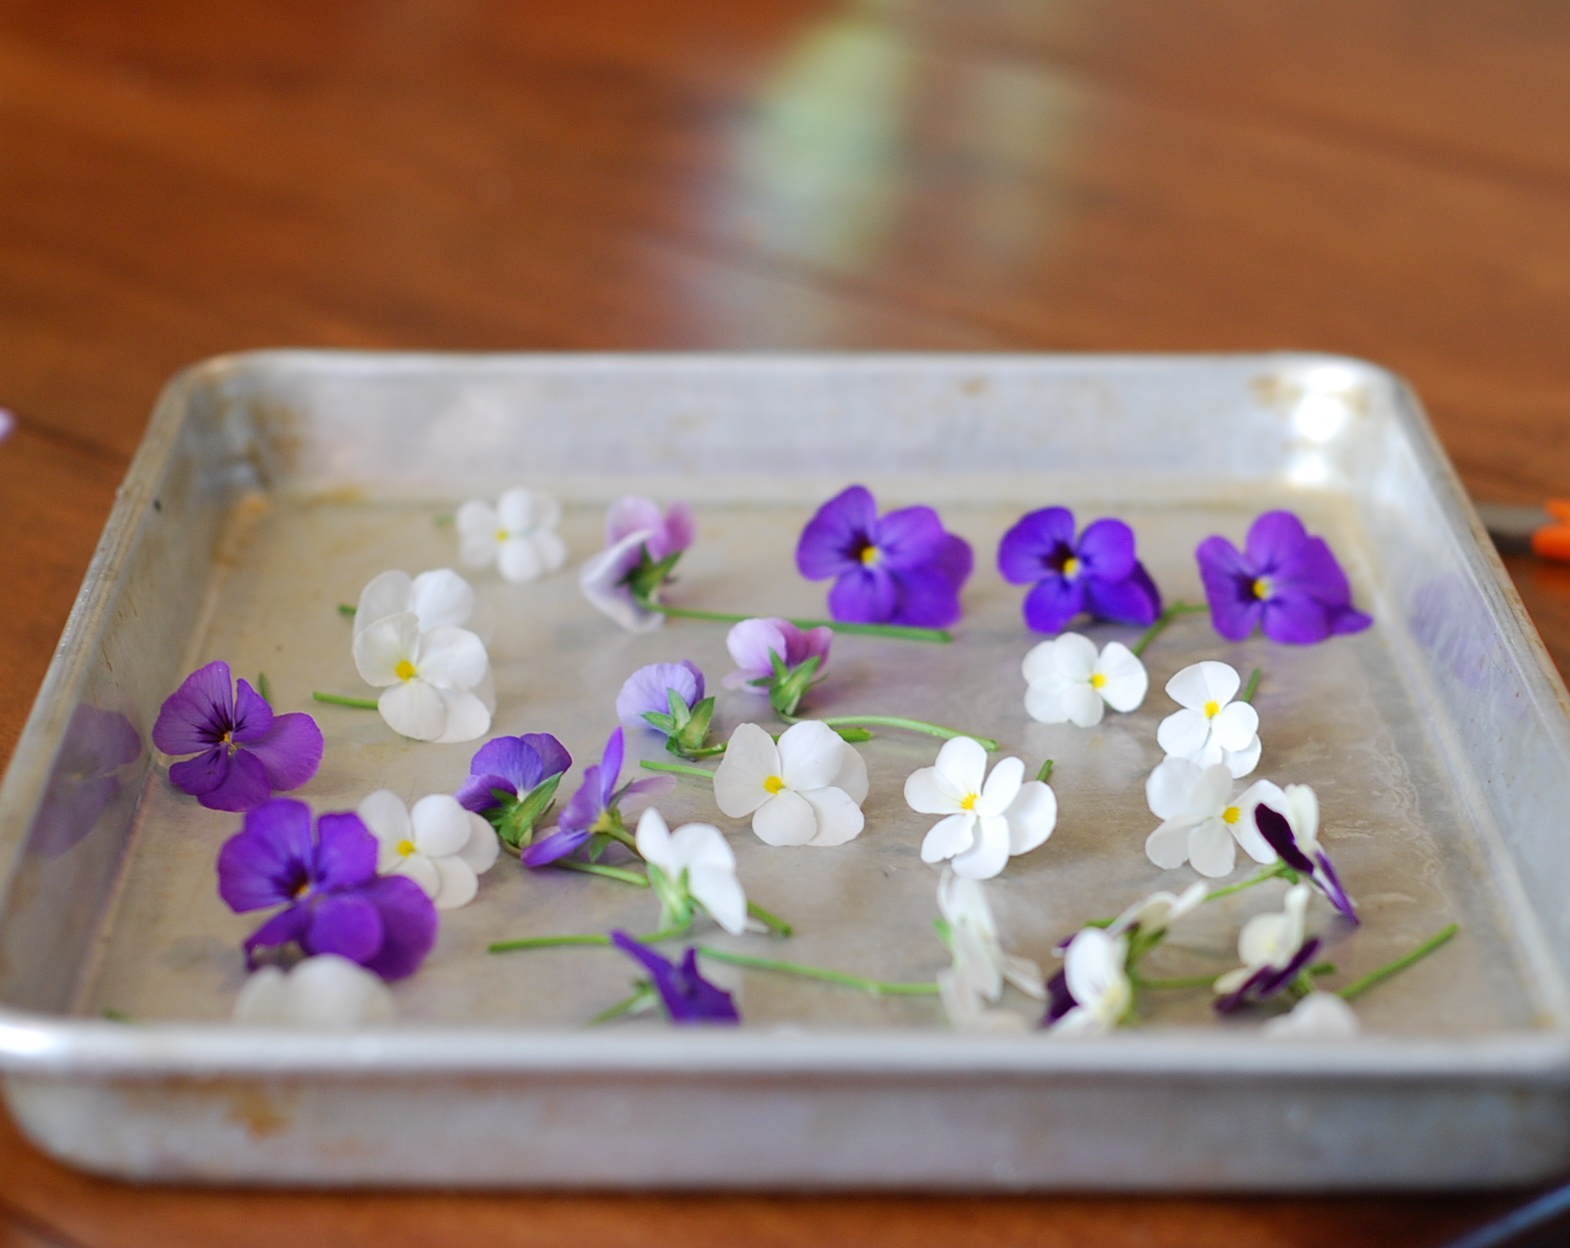 Edible Flowers For Cake Decorating : Marzipan: Sugared Edible Flowers for Cake Decorating